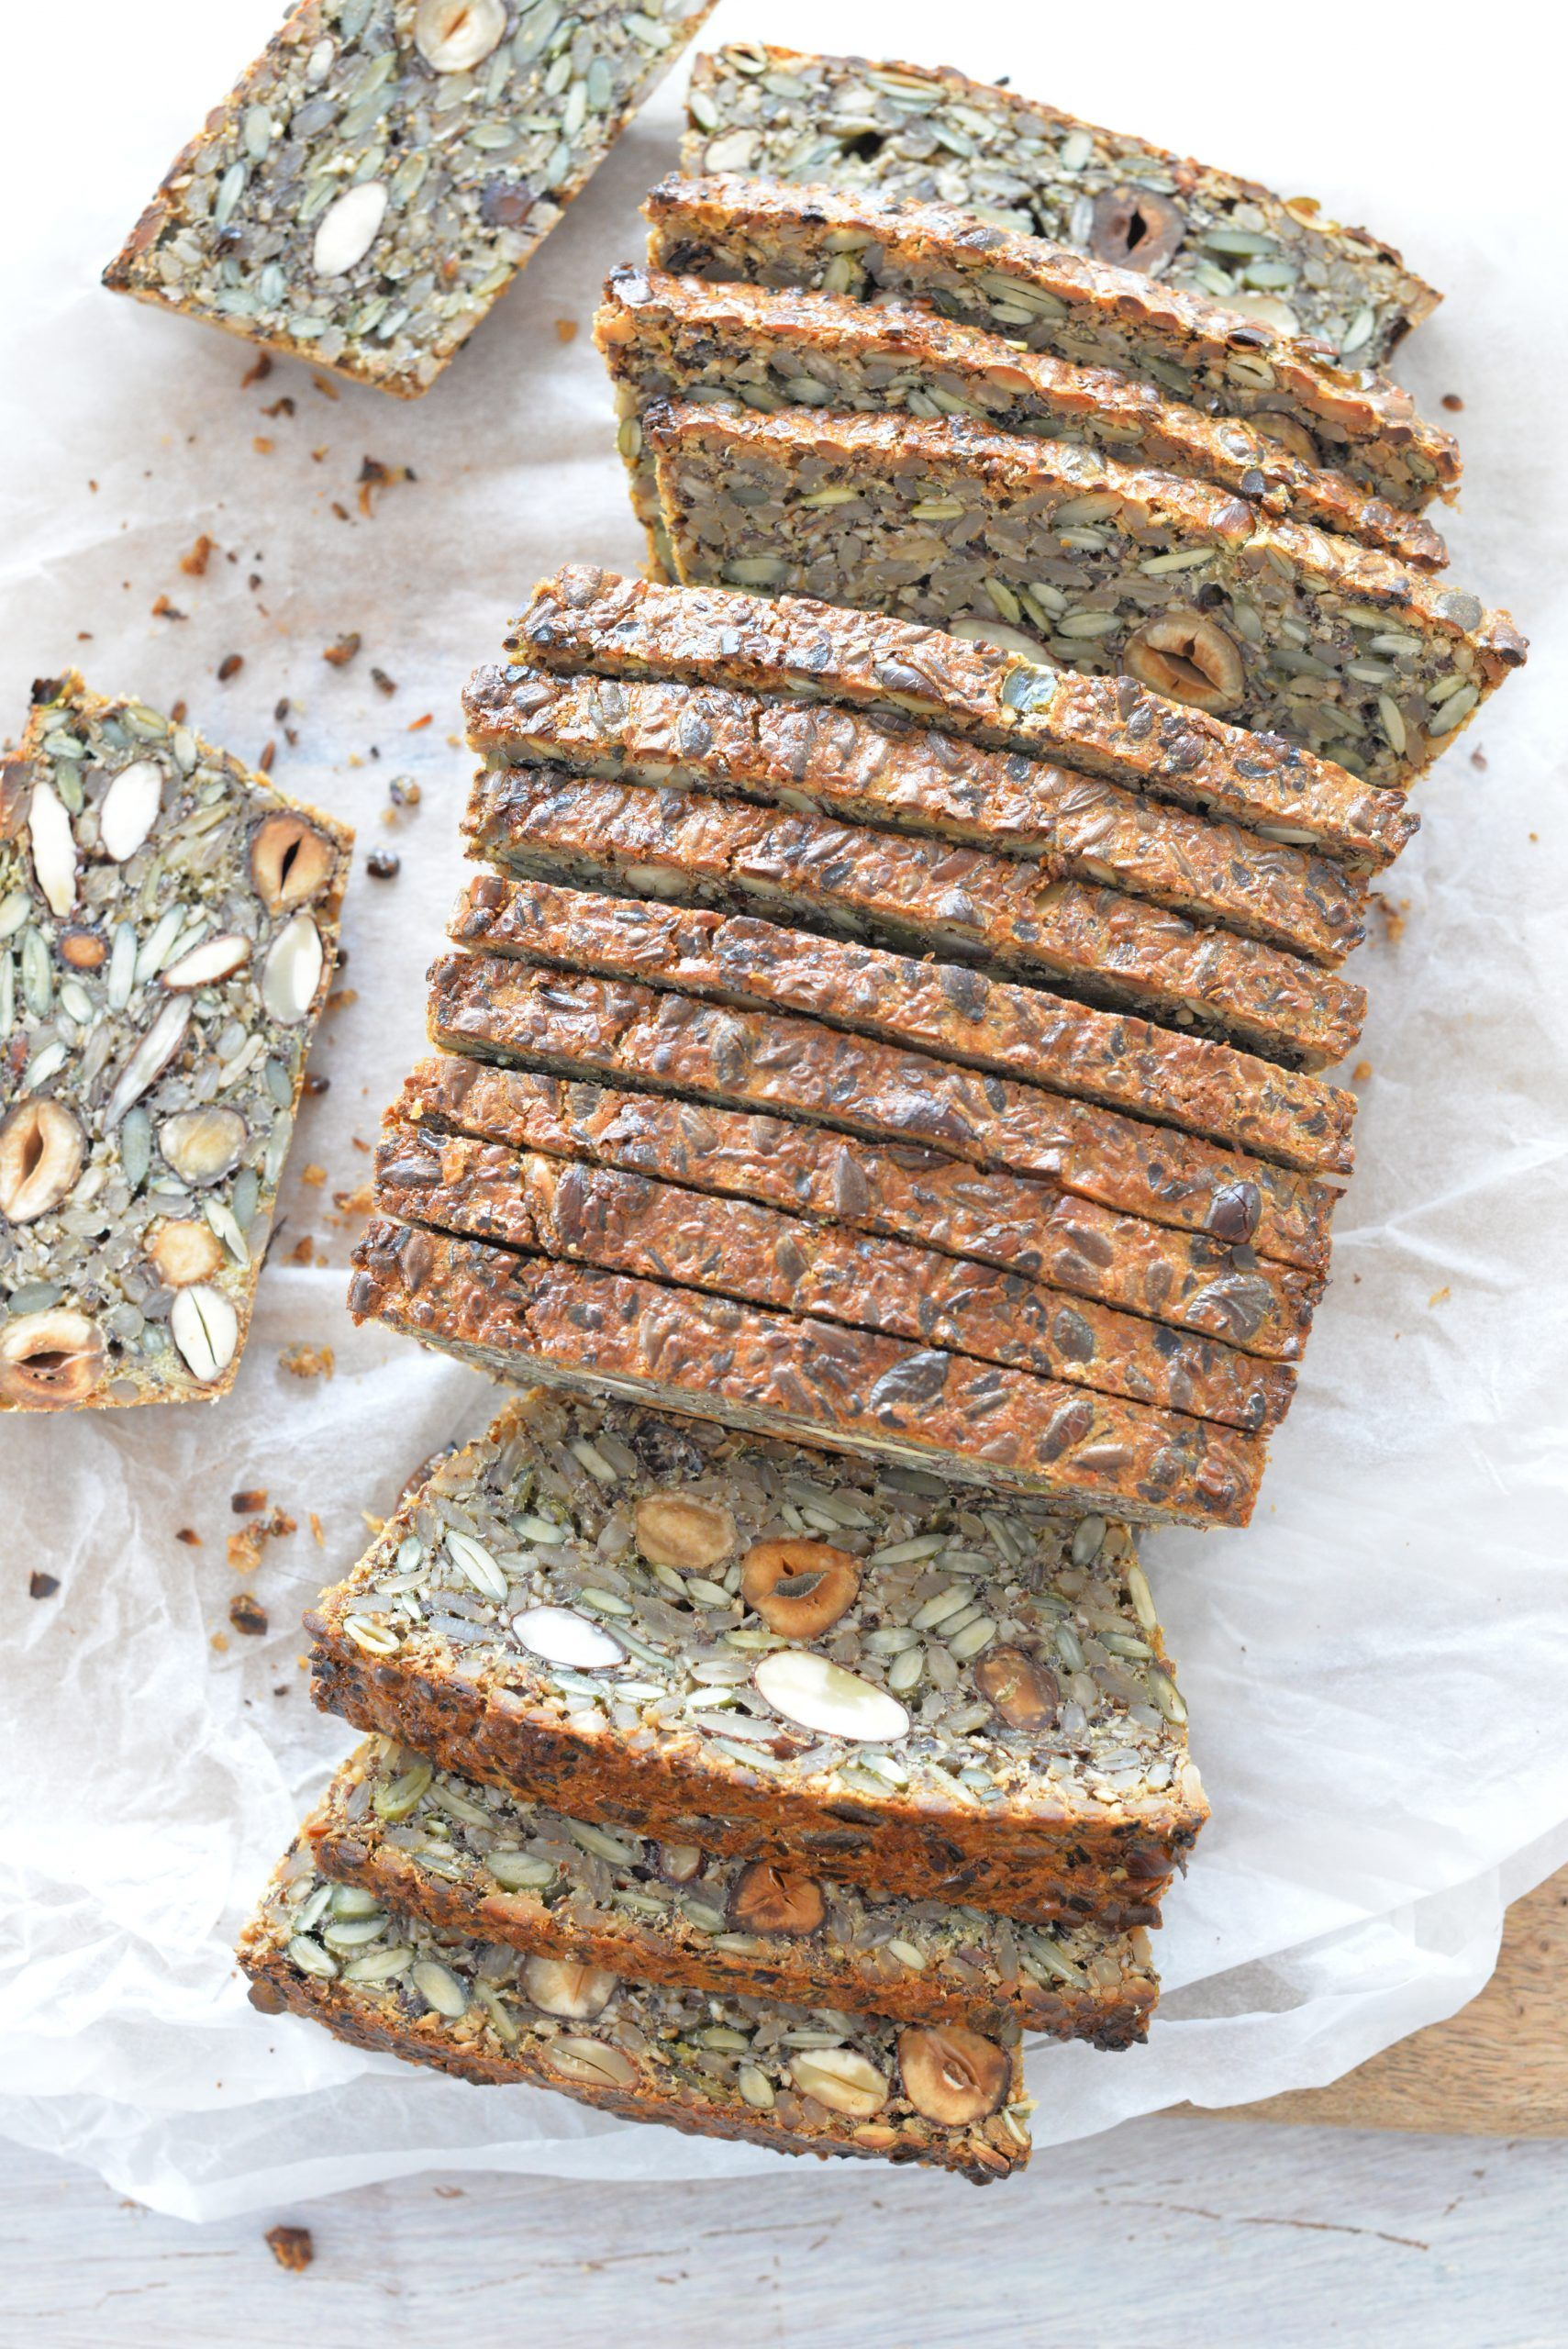 Nut And Seed Bread Gluten Free Egg Free Vegan Recipe Healthy Recipes Recipe In 2020 Seeded Bread Recipes Gluten Free Egg Free Nut And Seed Bread Recipe